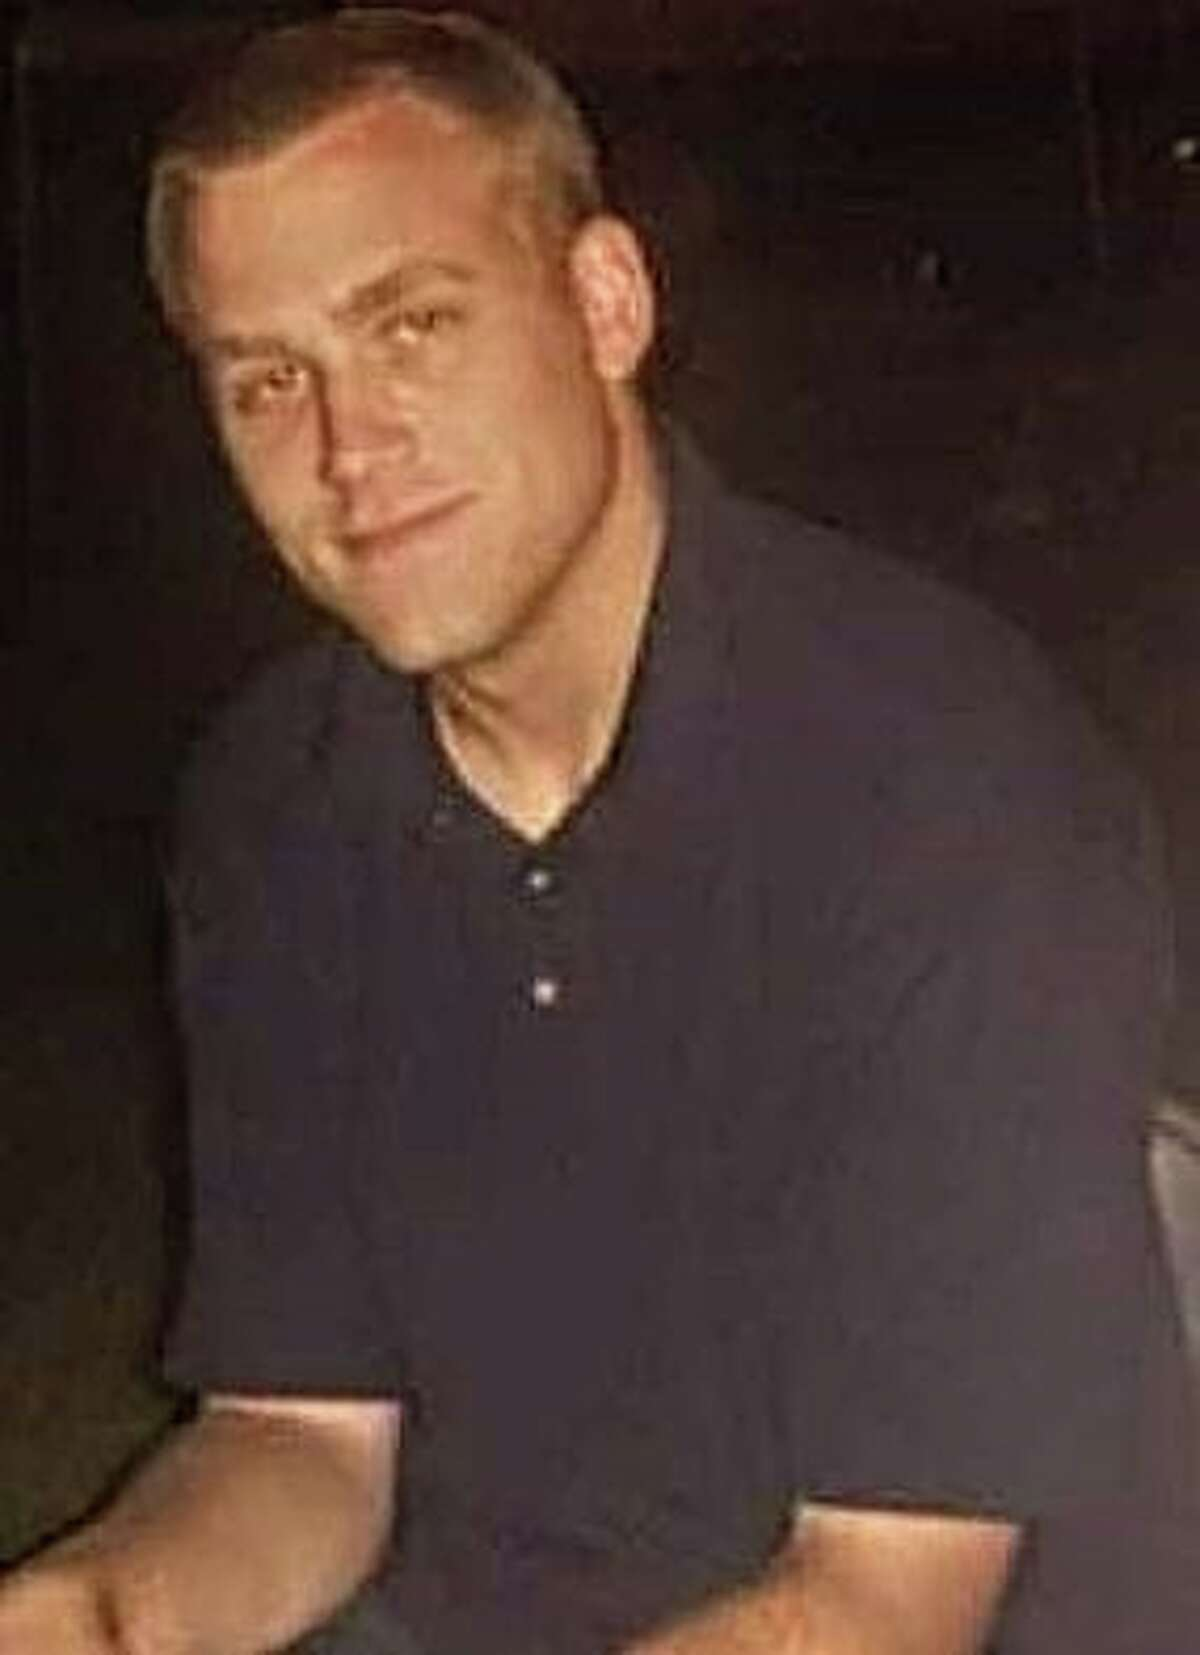 Shawn Terry, 35, was killed at the Red Carpet Inn in Albany Sept. 18, 2021. Terry, a championship wrestler at Averill Park High School, struggled in his life after he witnessed his best friend killed by a drunk driver in 2003, said his stepmother, Michelle Terry.